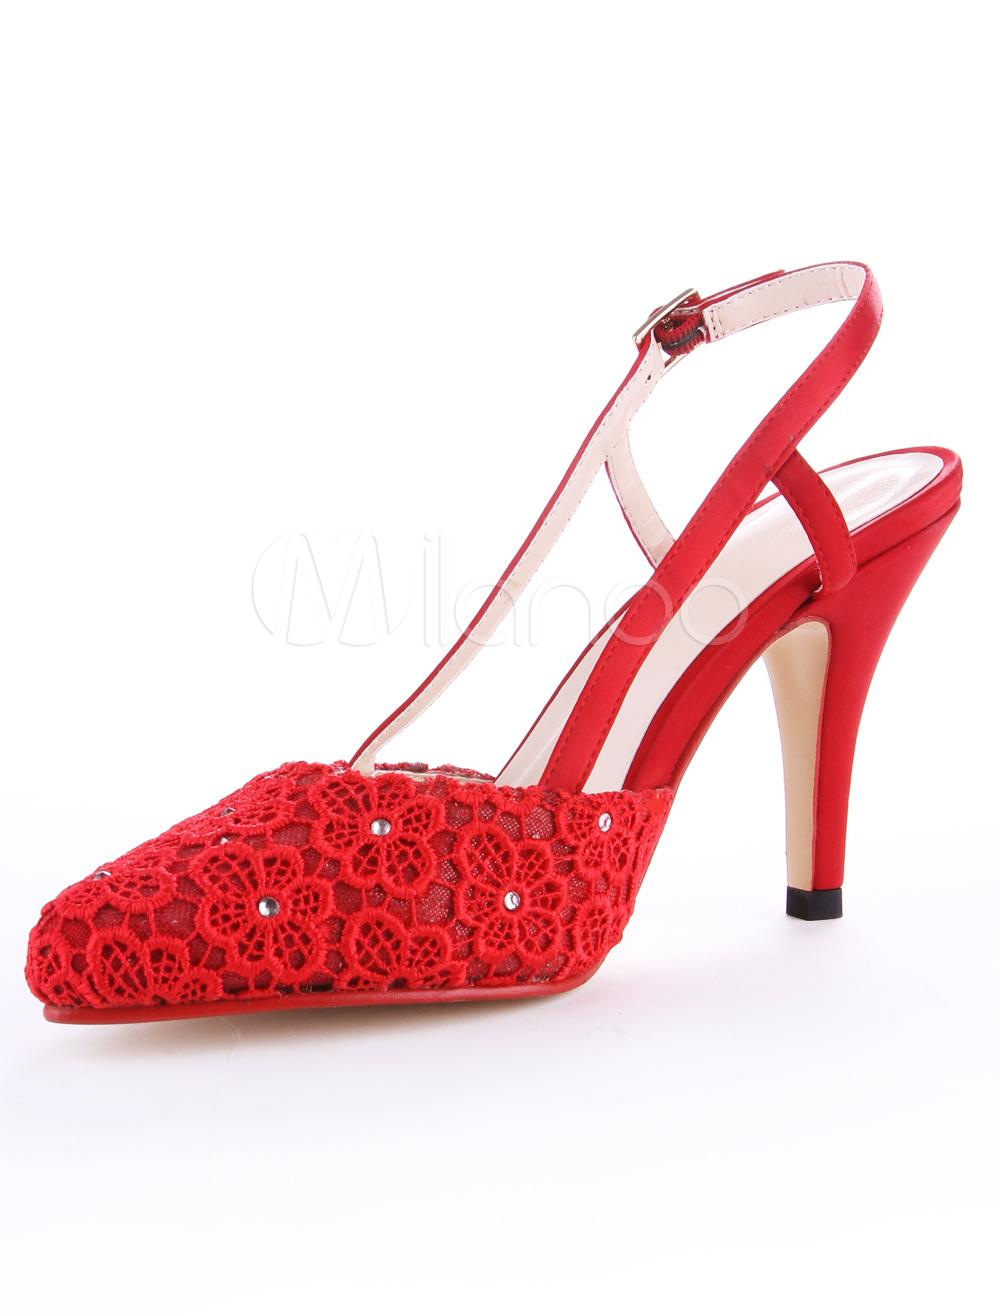 Red Pointed Toe Stiletto Heel Mesh Women's High Heels